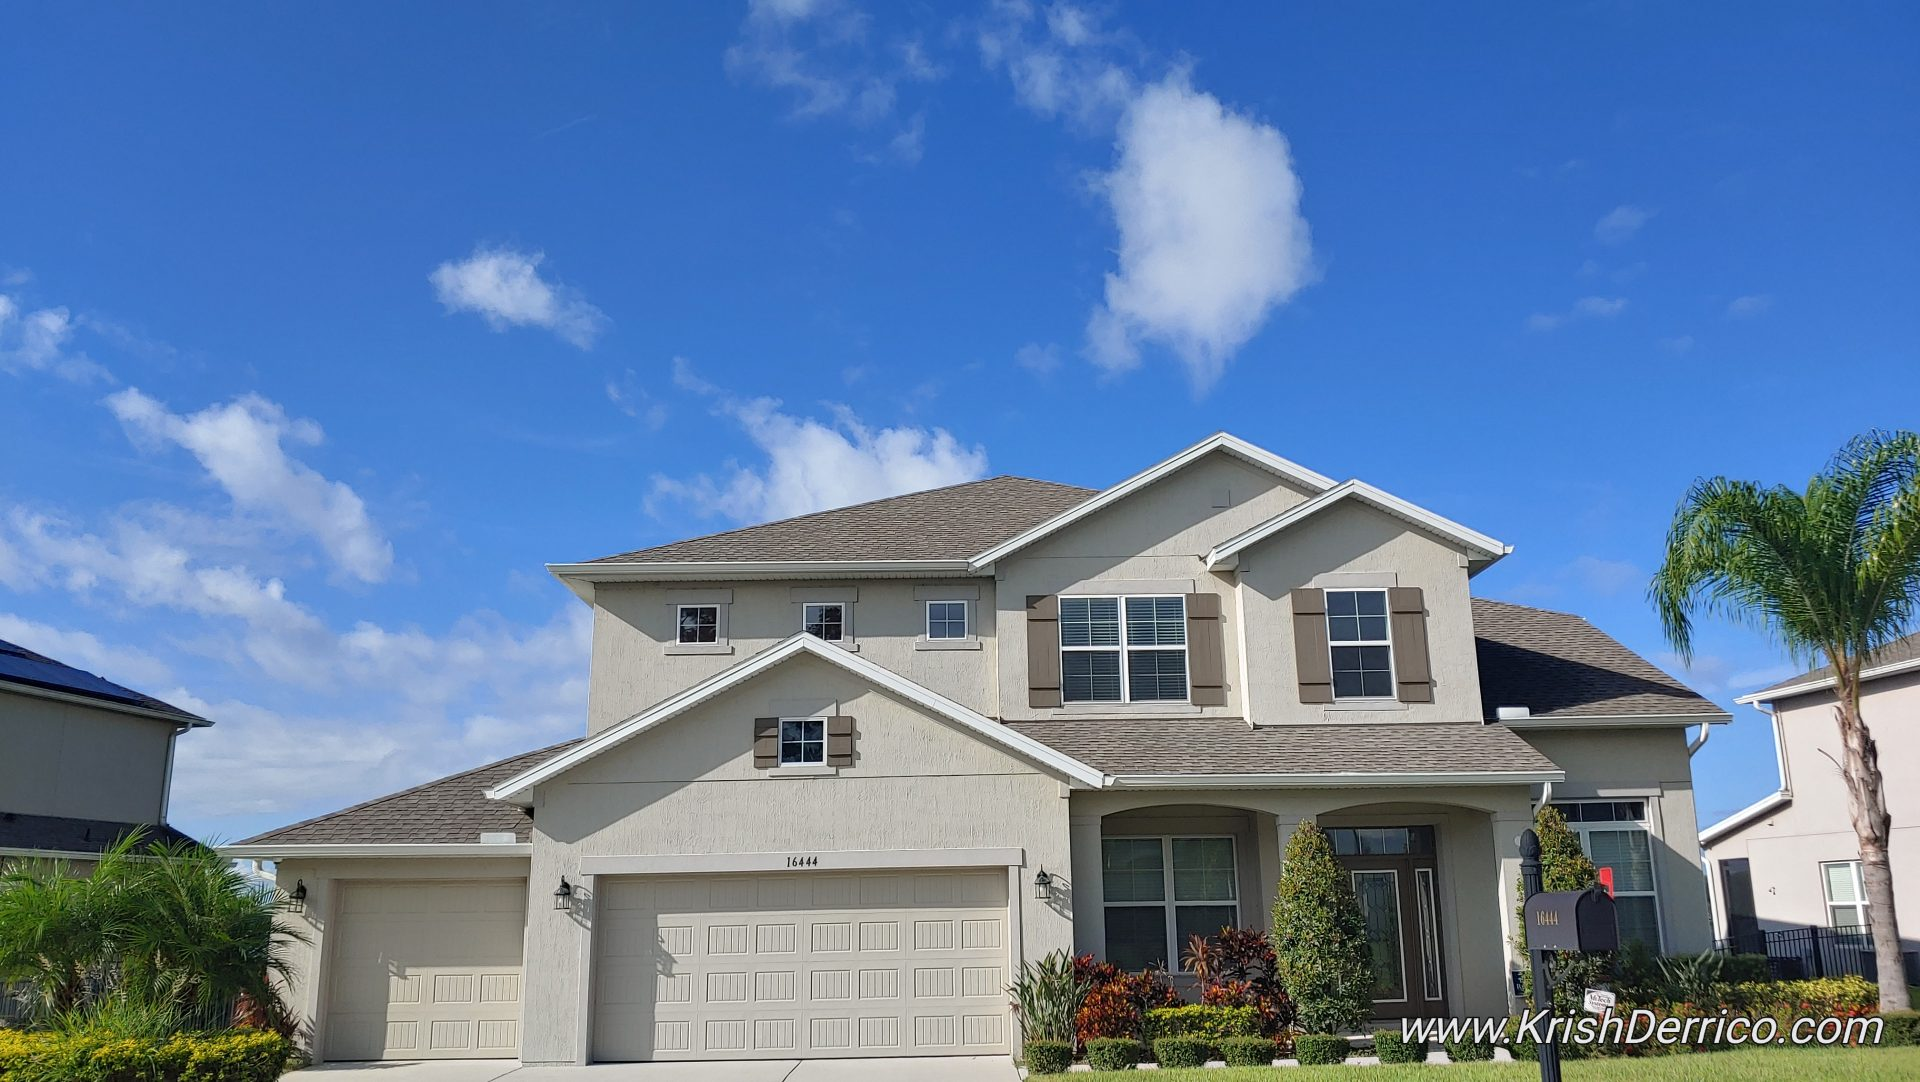 lakefront homes in clermont, fl